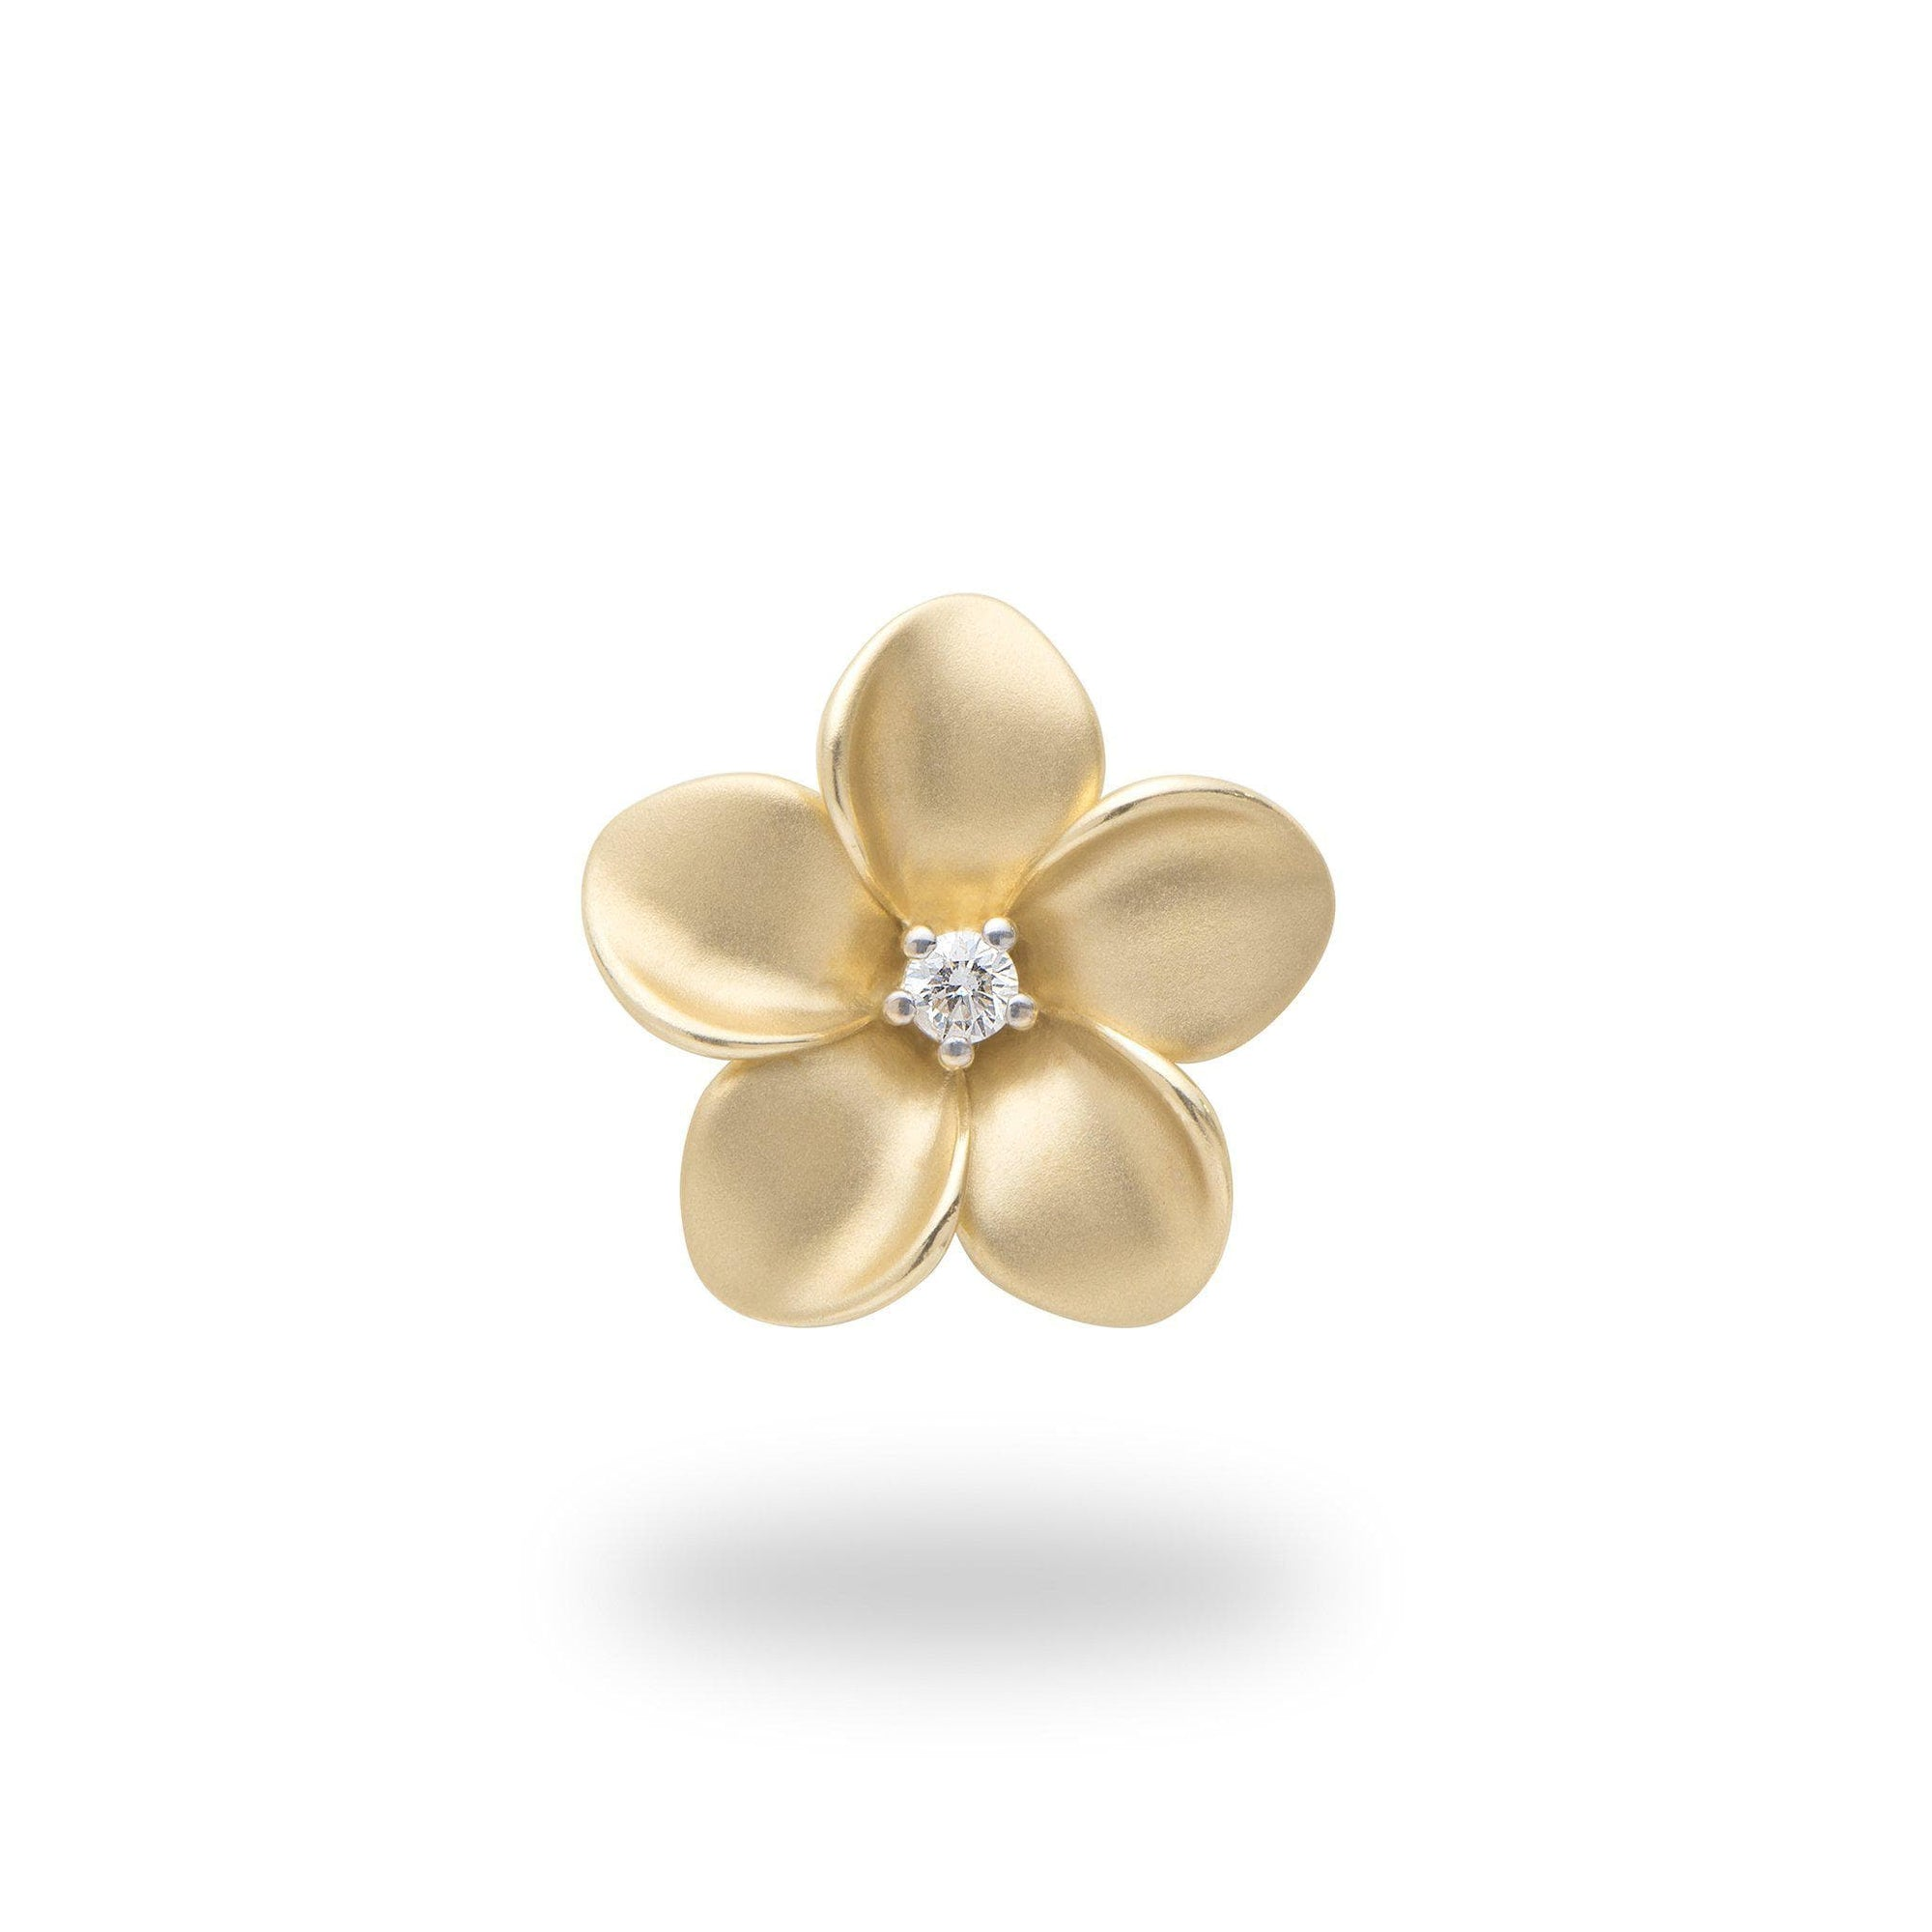 Plumeria Pendant in Gold with Diamond - 16mm-[SKU]